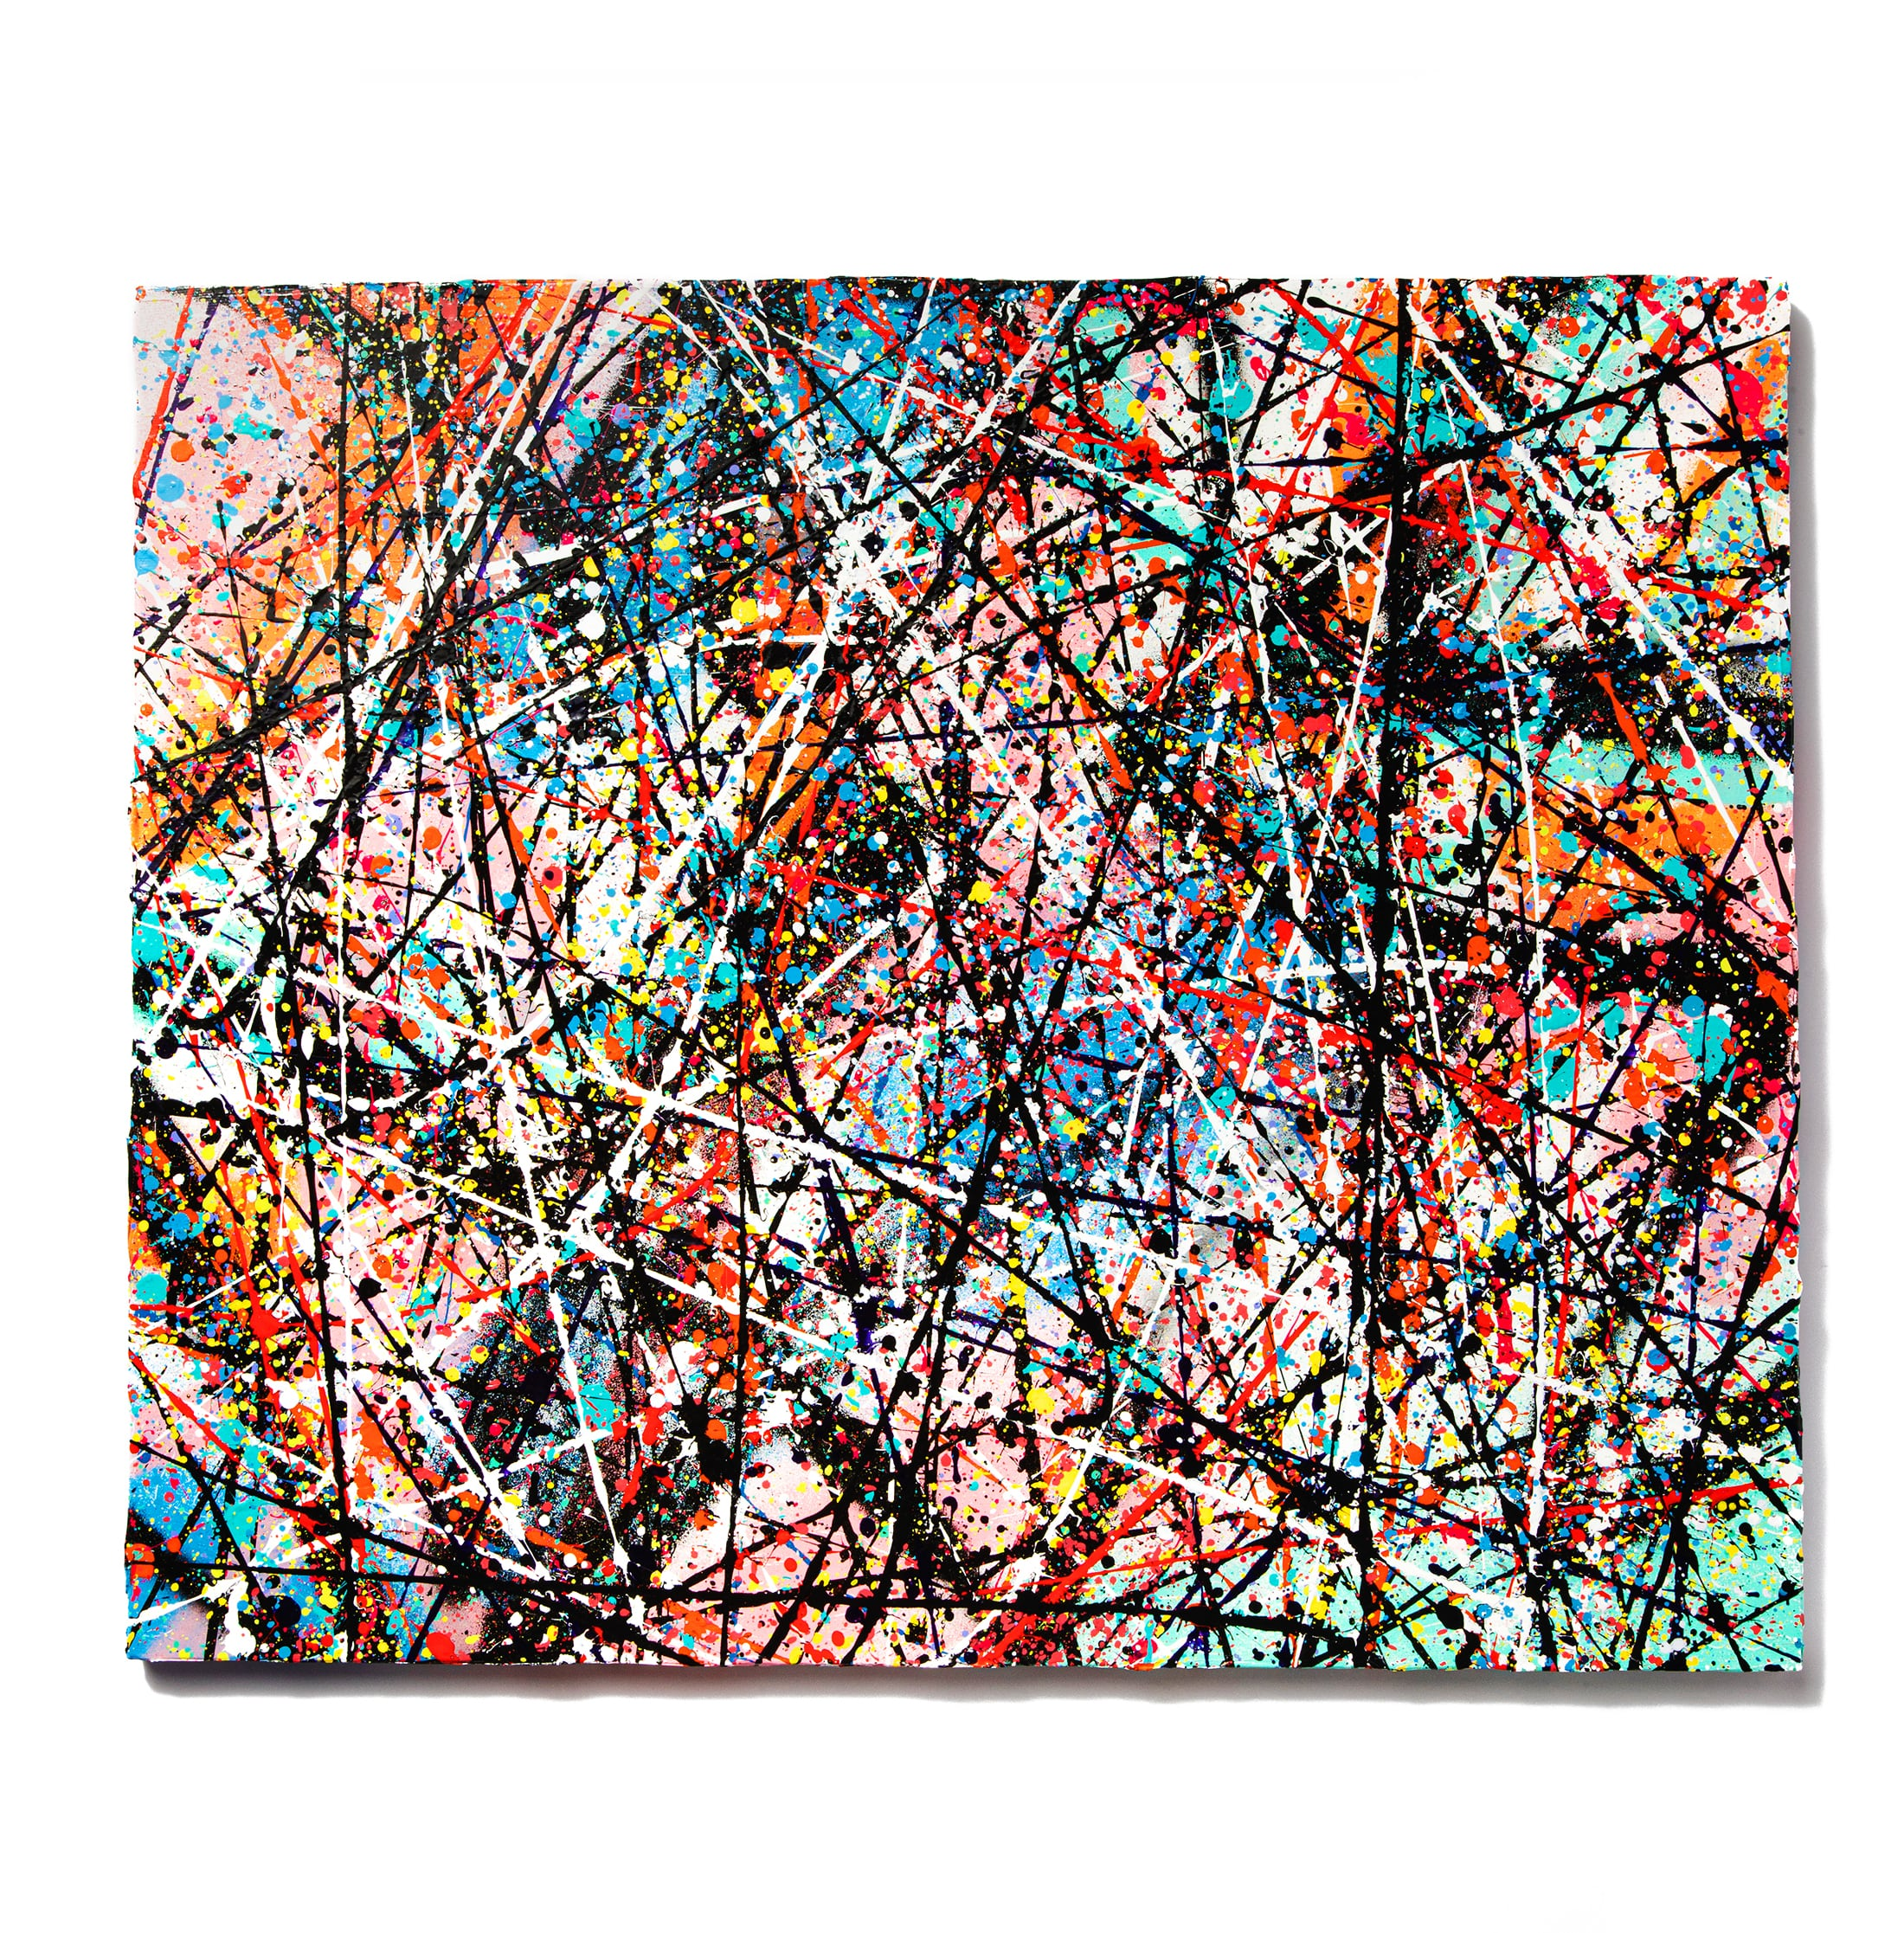 Abstract Painting: NEW NOISE